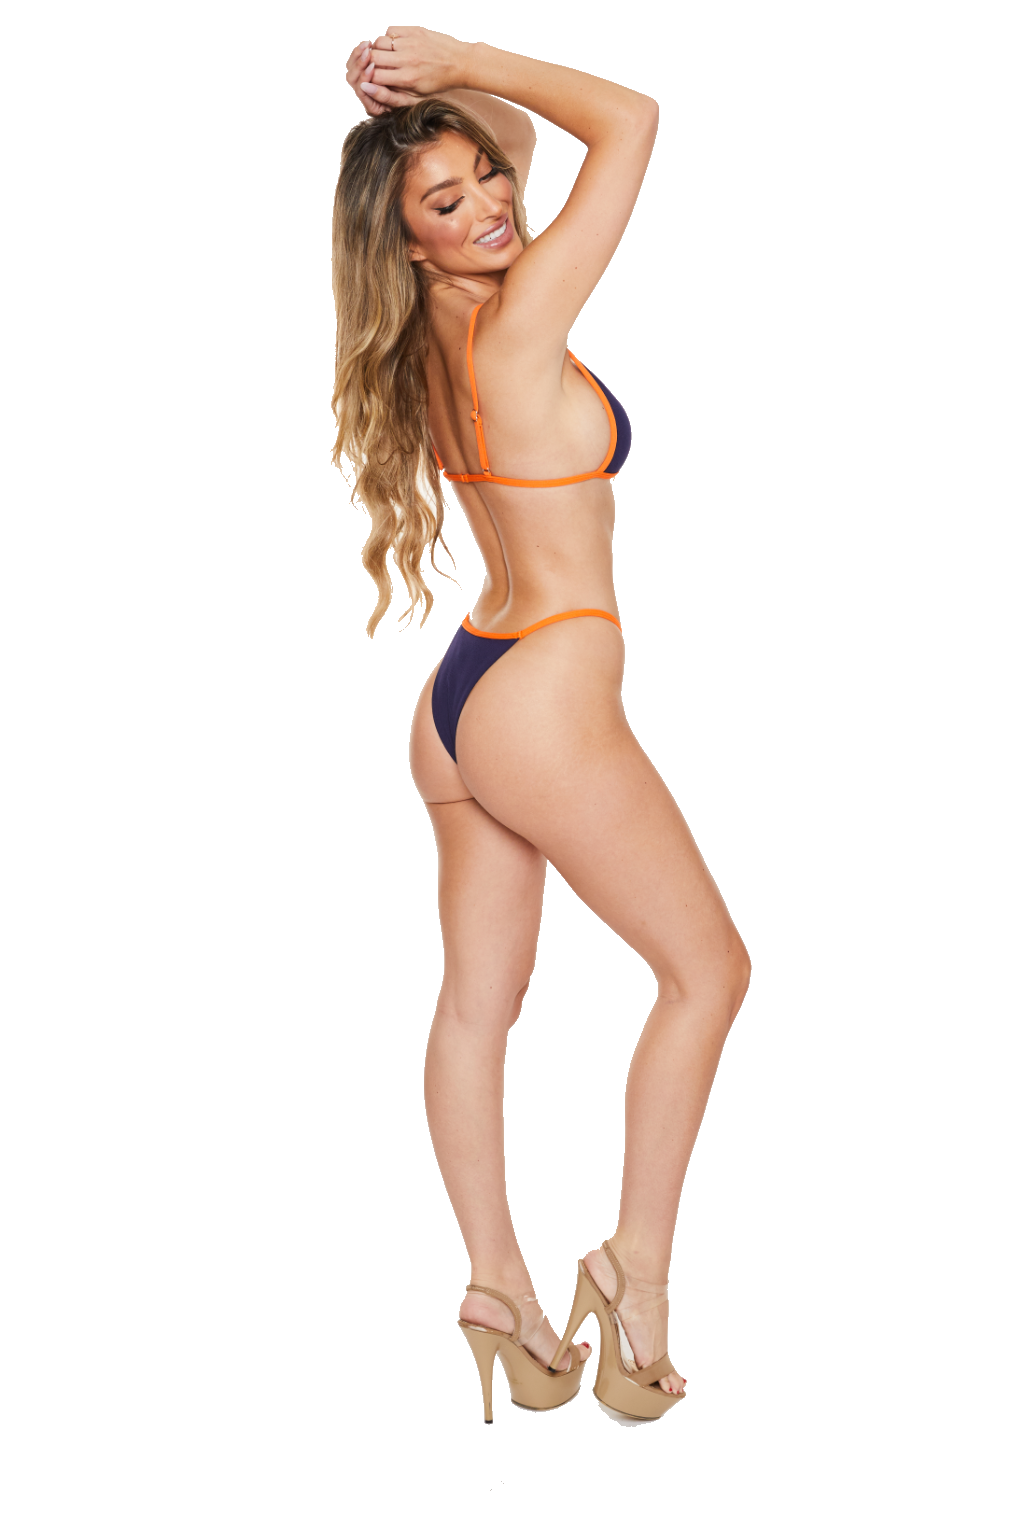 CATCHING WAVES - NAVY AND ORANGE BIKINI - www.prettyboutique.com